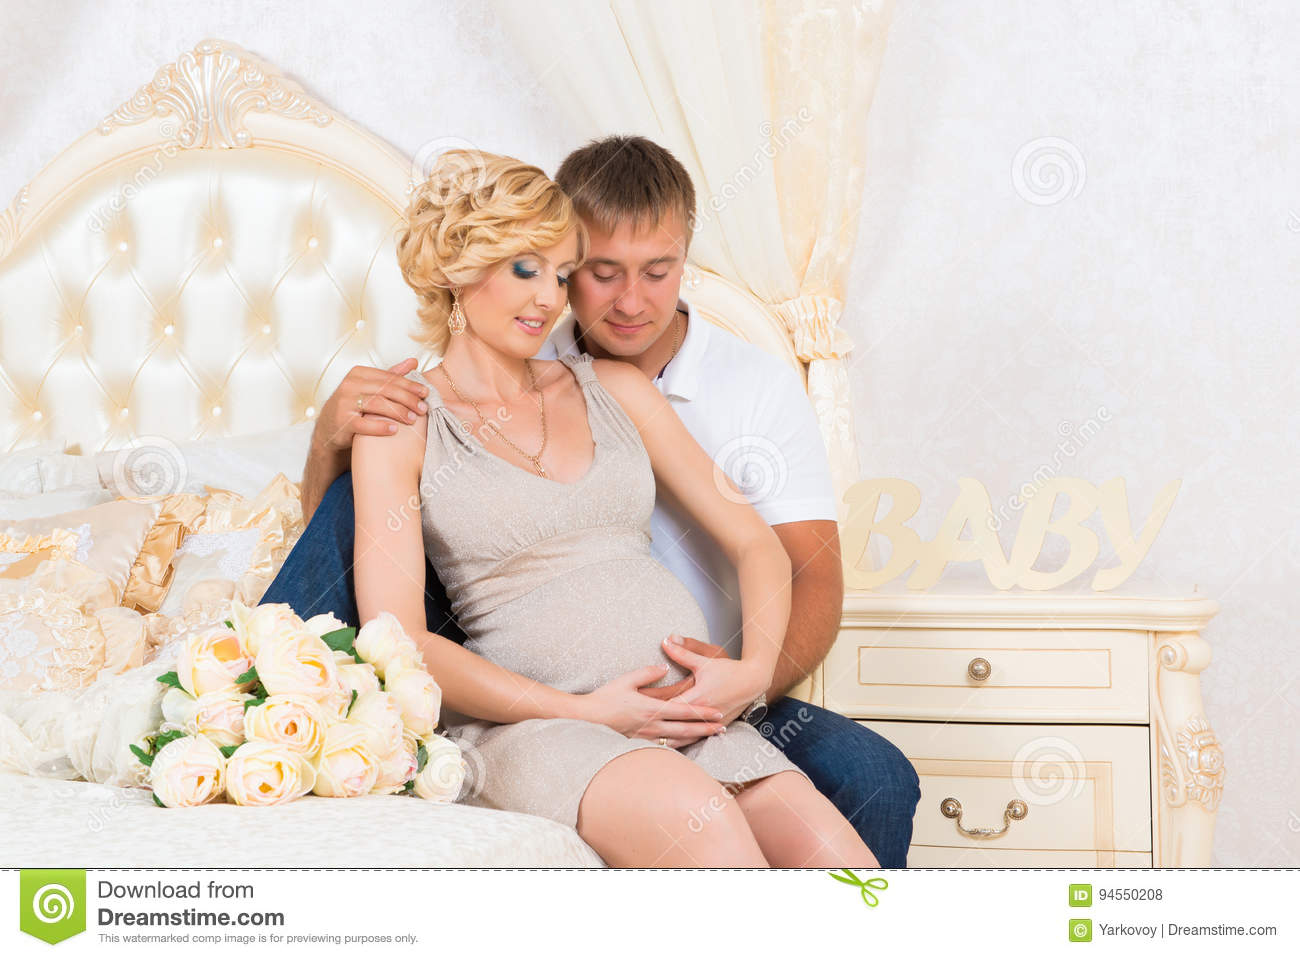 Young Parents In Bed Expecting A Little Baby Romantic Moments For Pregnant Couple Stock Photo Image Of Love Birth 94550208